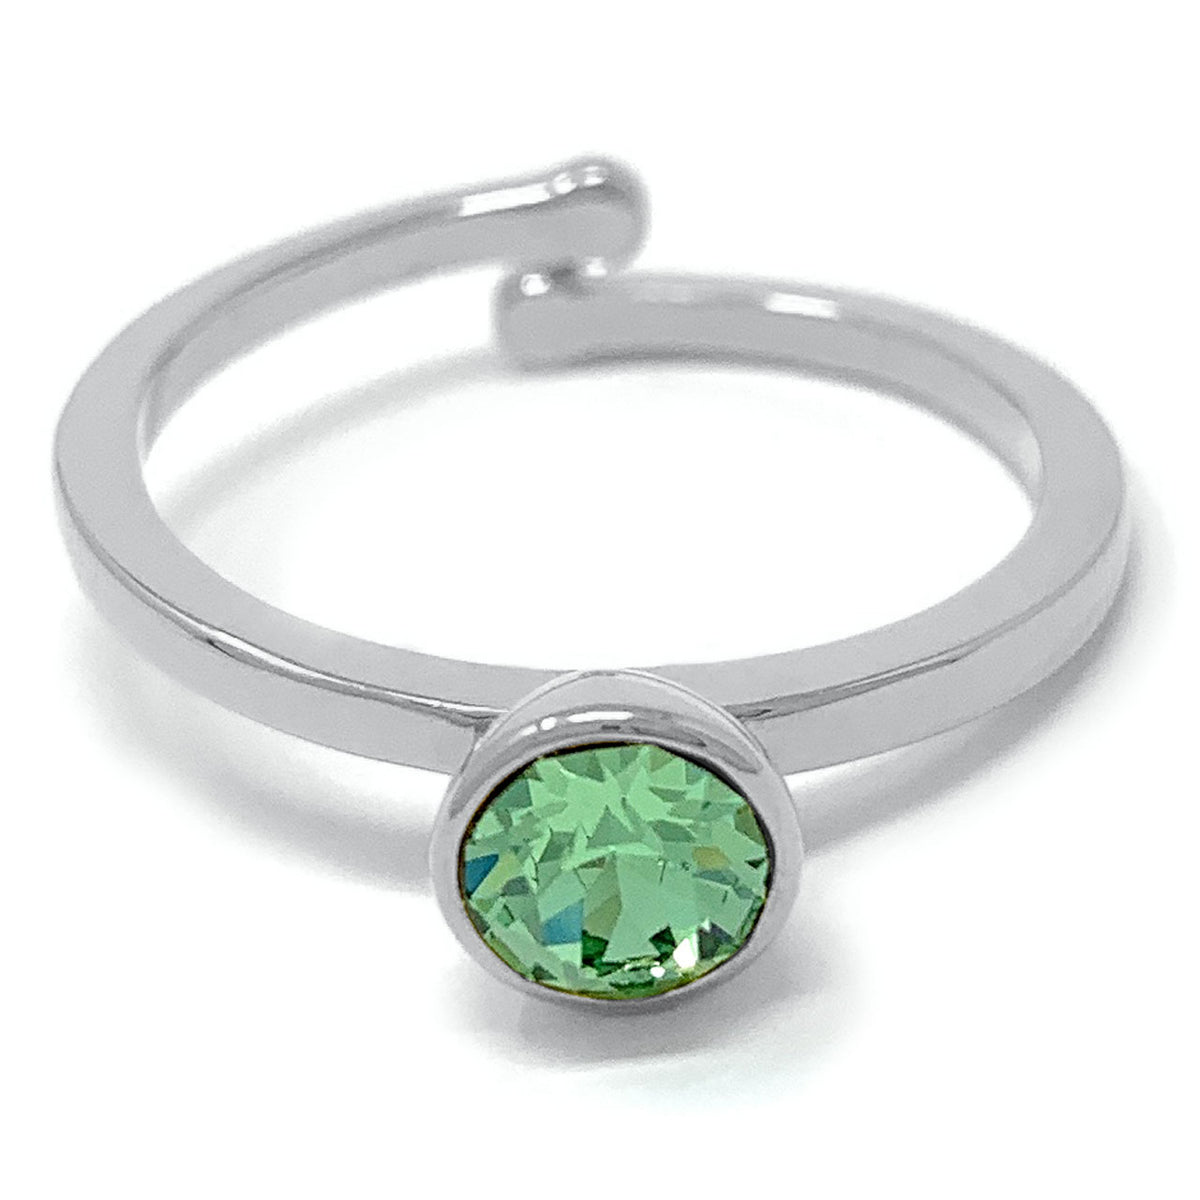 Harley Adjustable Ring with Green Peridot Round Crystals from Swarovski Silver Toned Rhodium Plated - Ed Heart